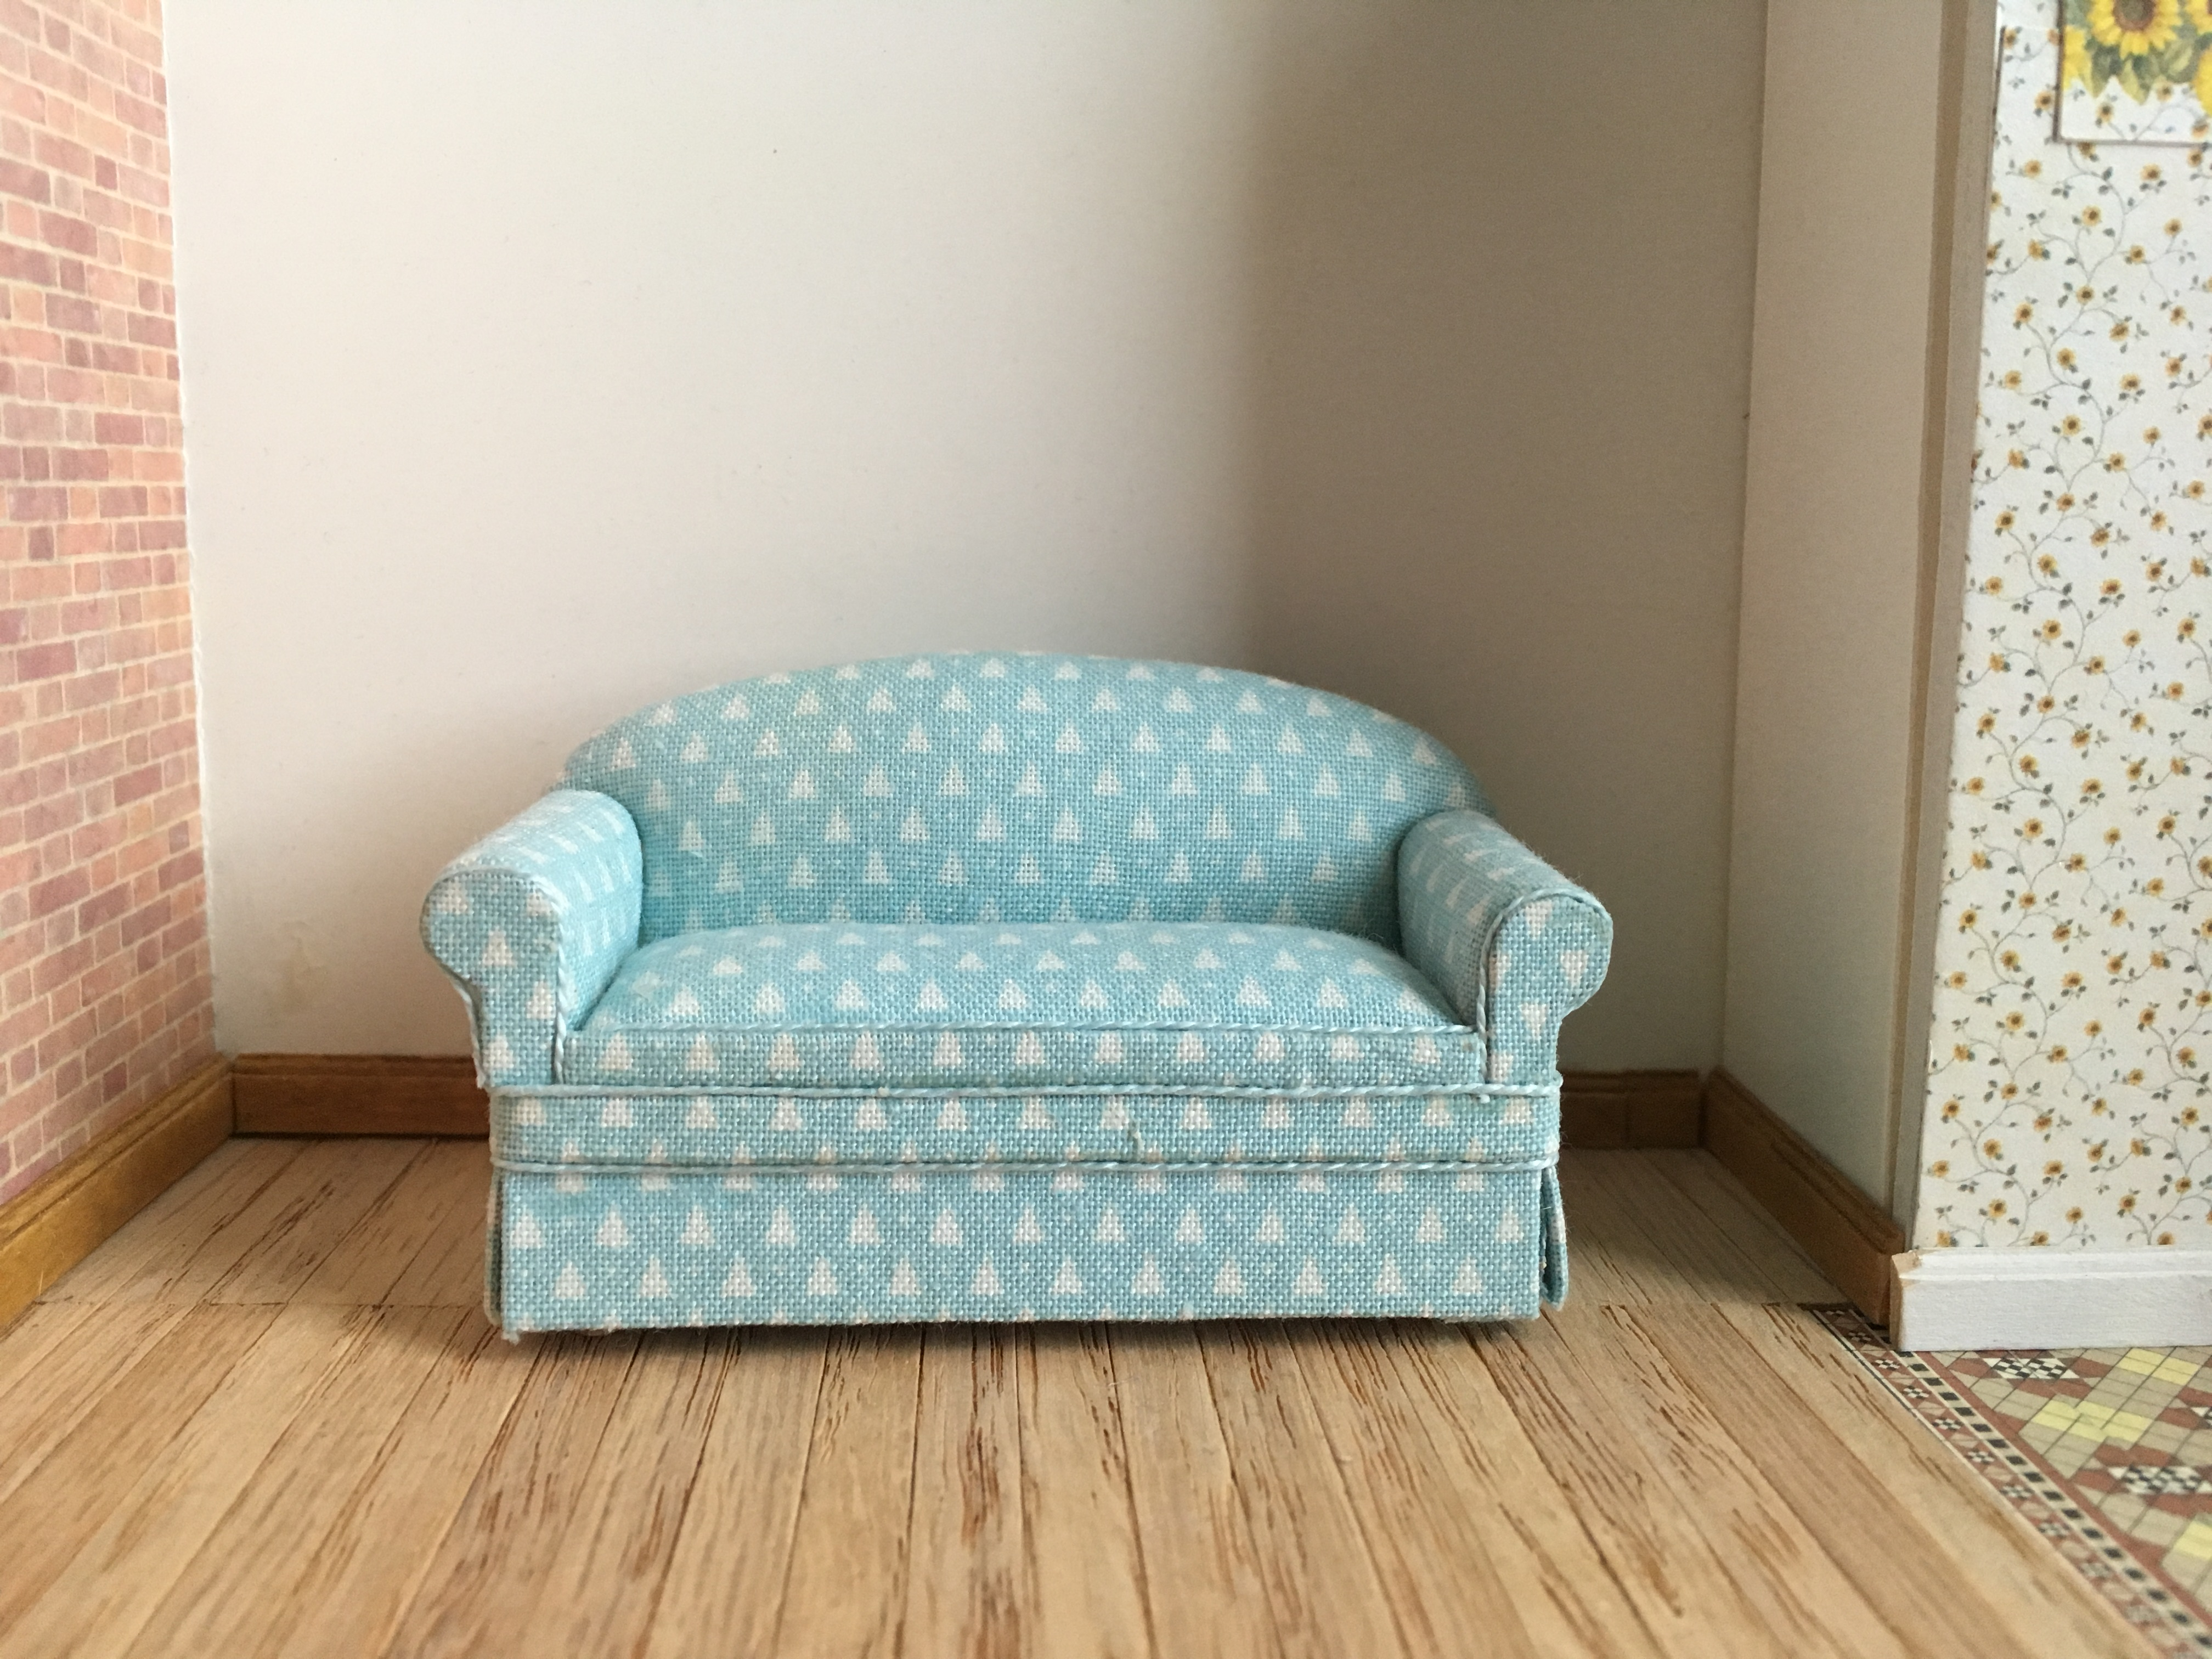 Seaglass Fabric Sofa